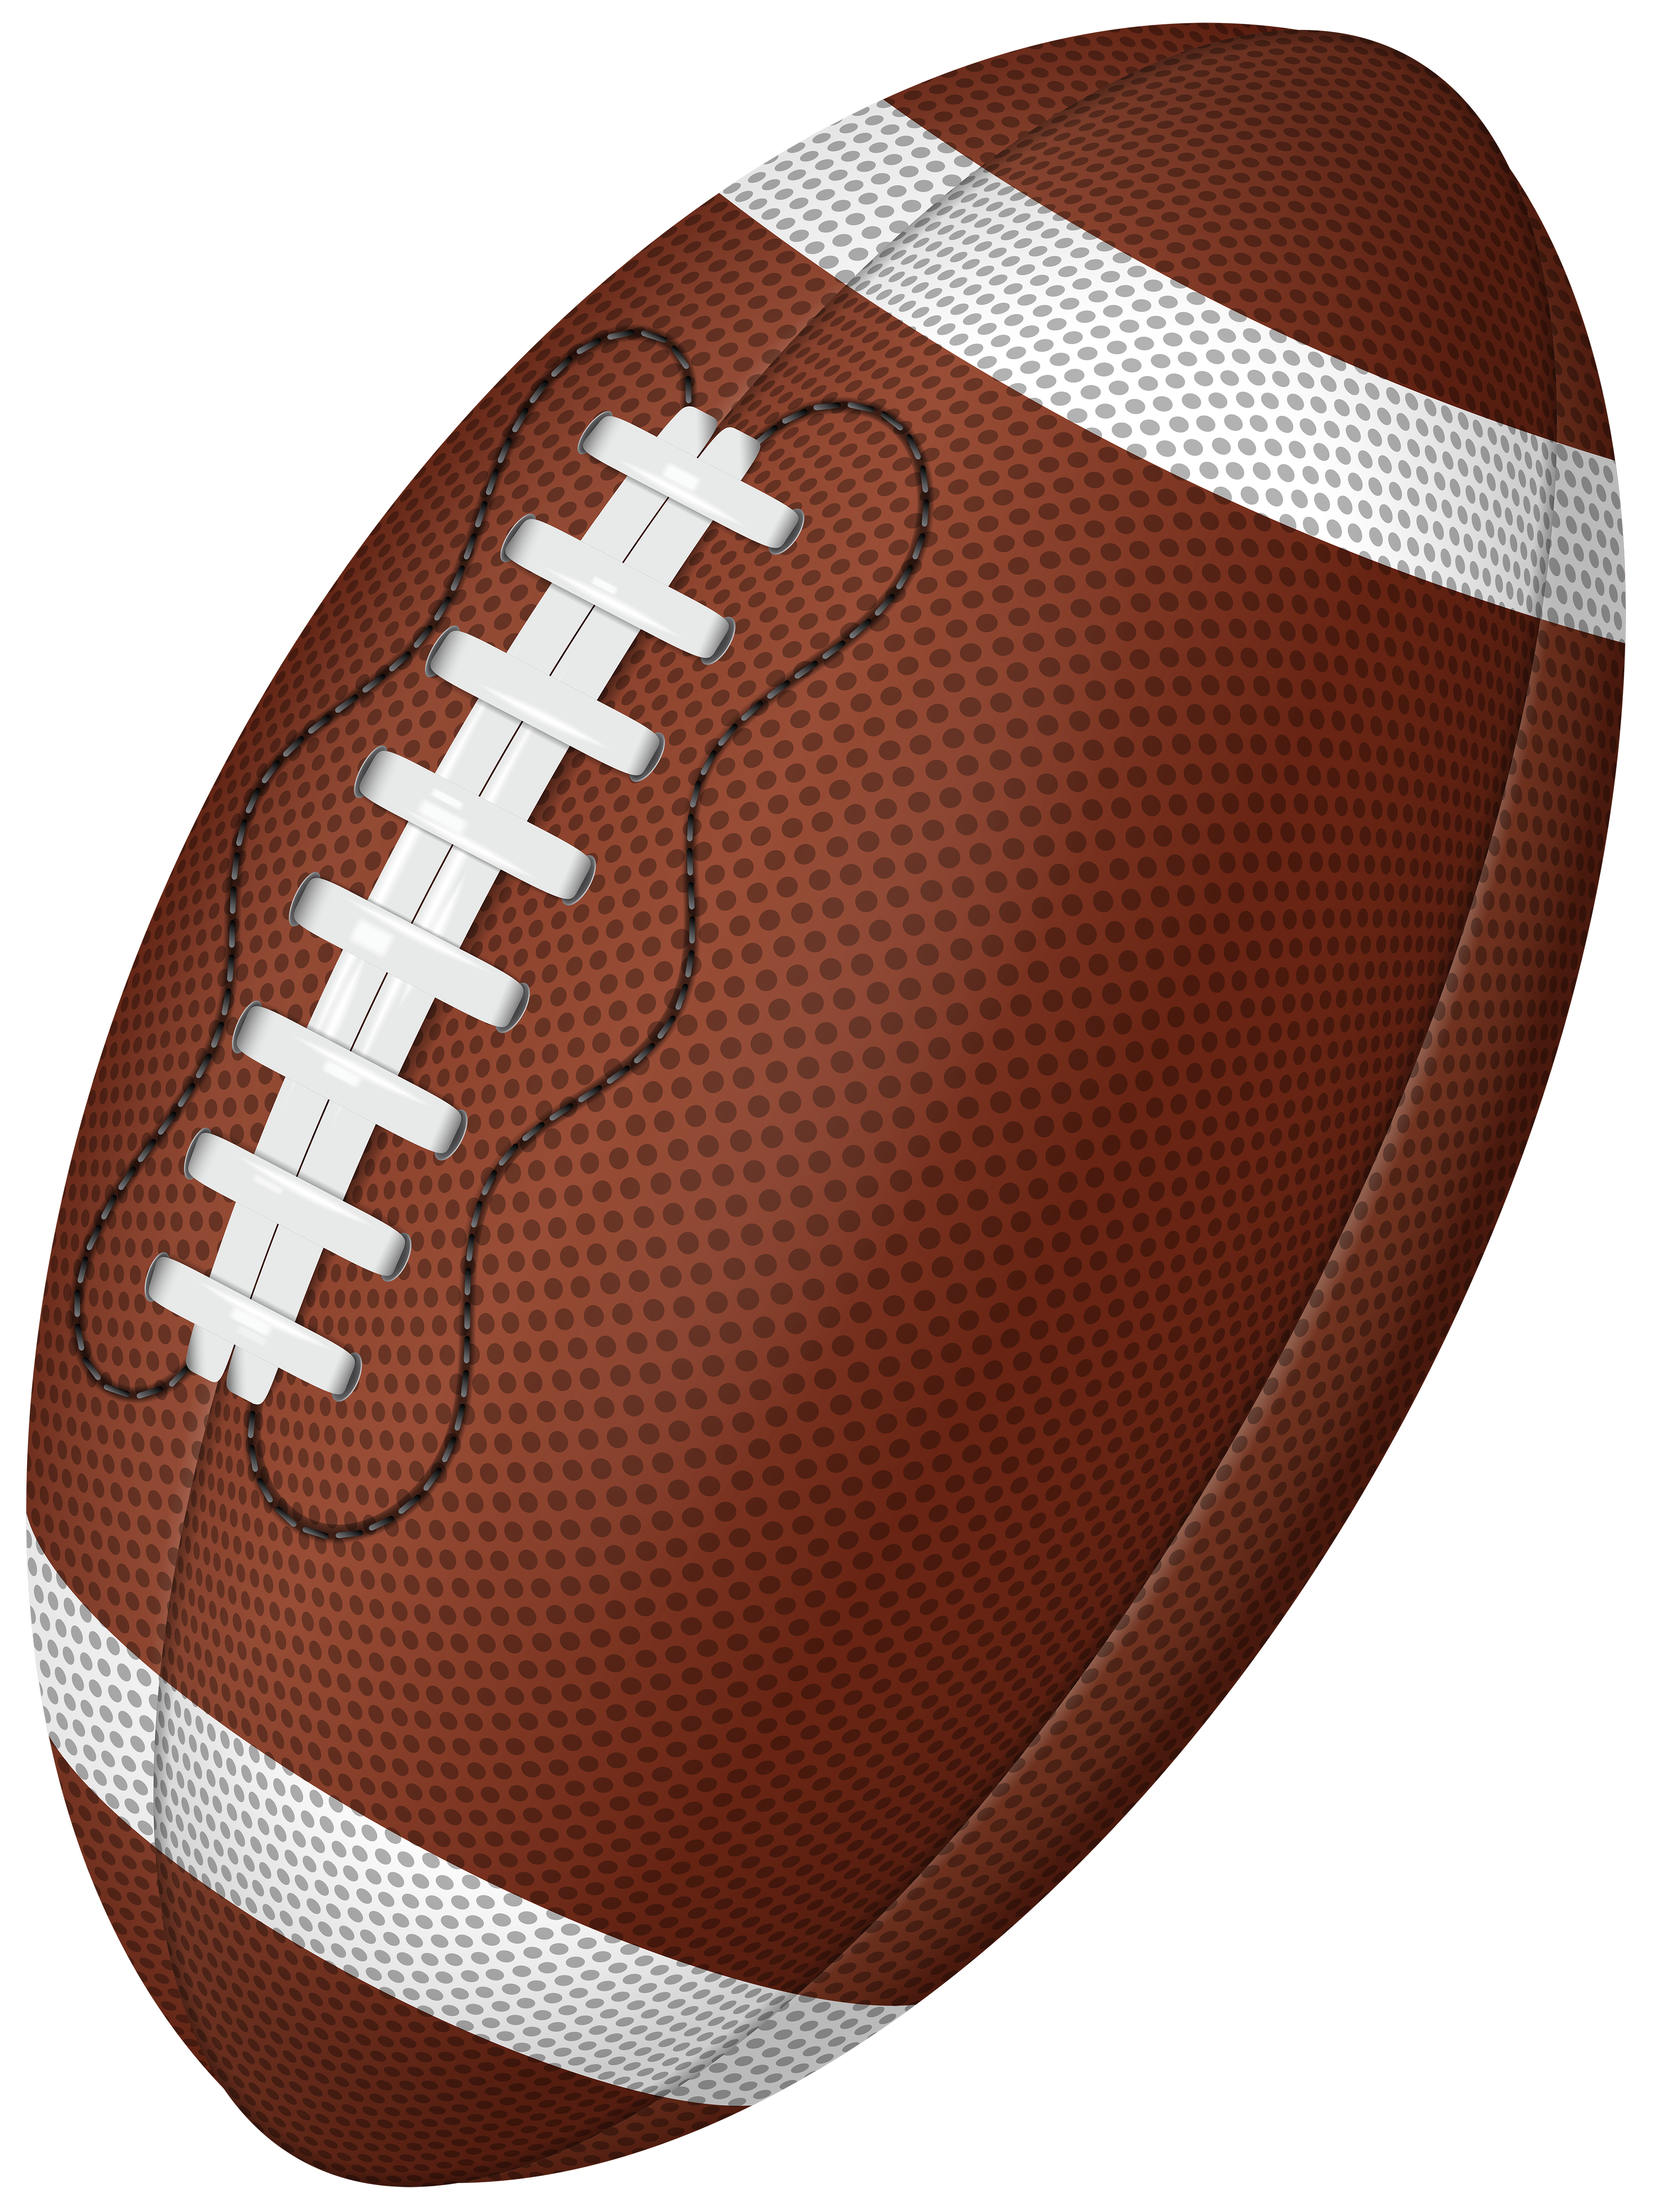 American football clipart free transparent download Football Ball PNG Clip Art Image | Gallery Yopriceville - High ... transparent download